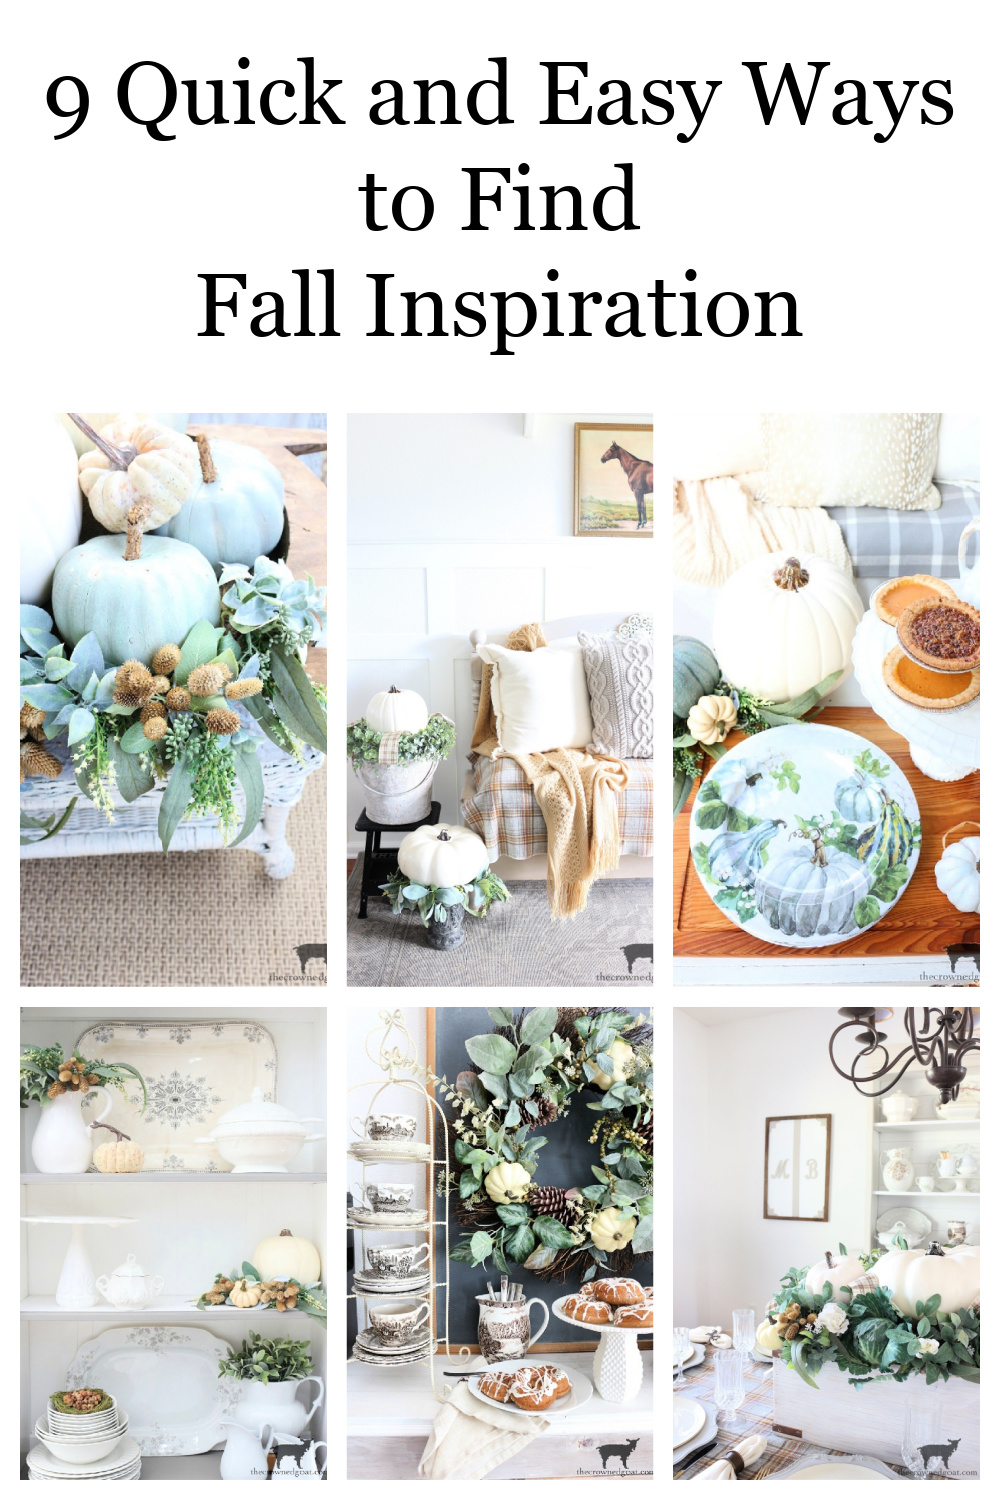 9 Quick and Easy Ways to Find Fall Inspiration-The Crowned Goat